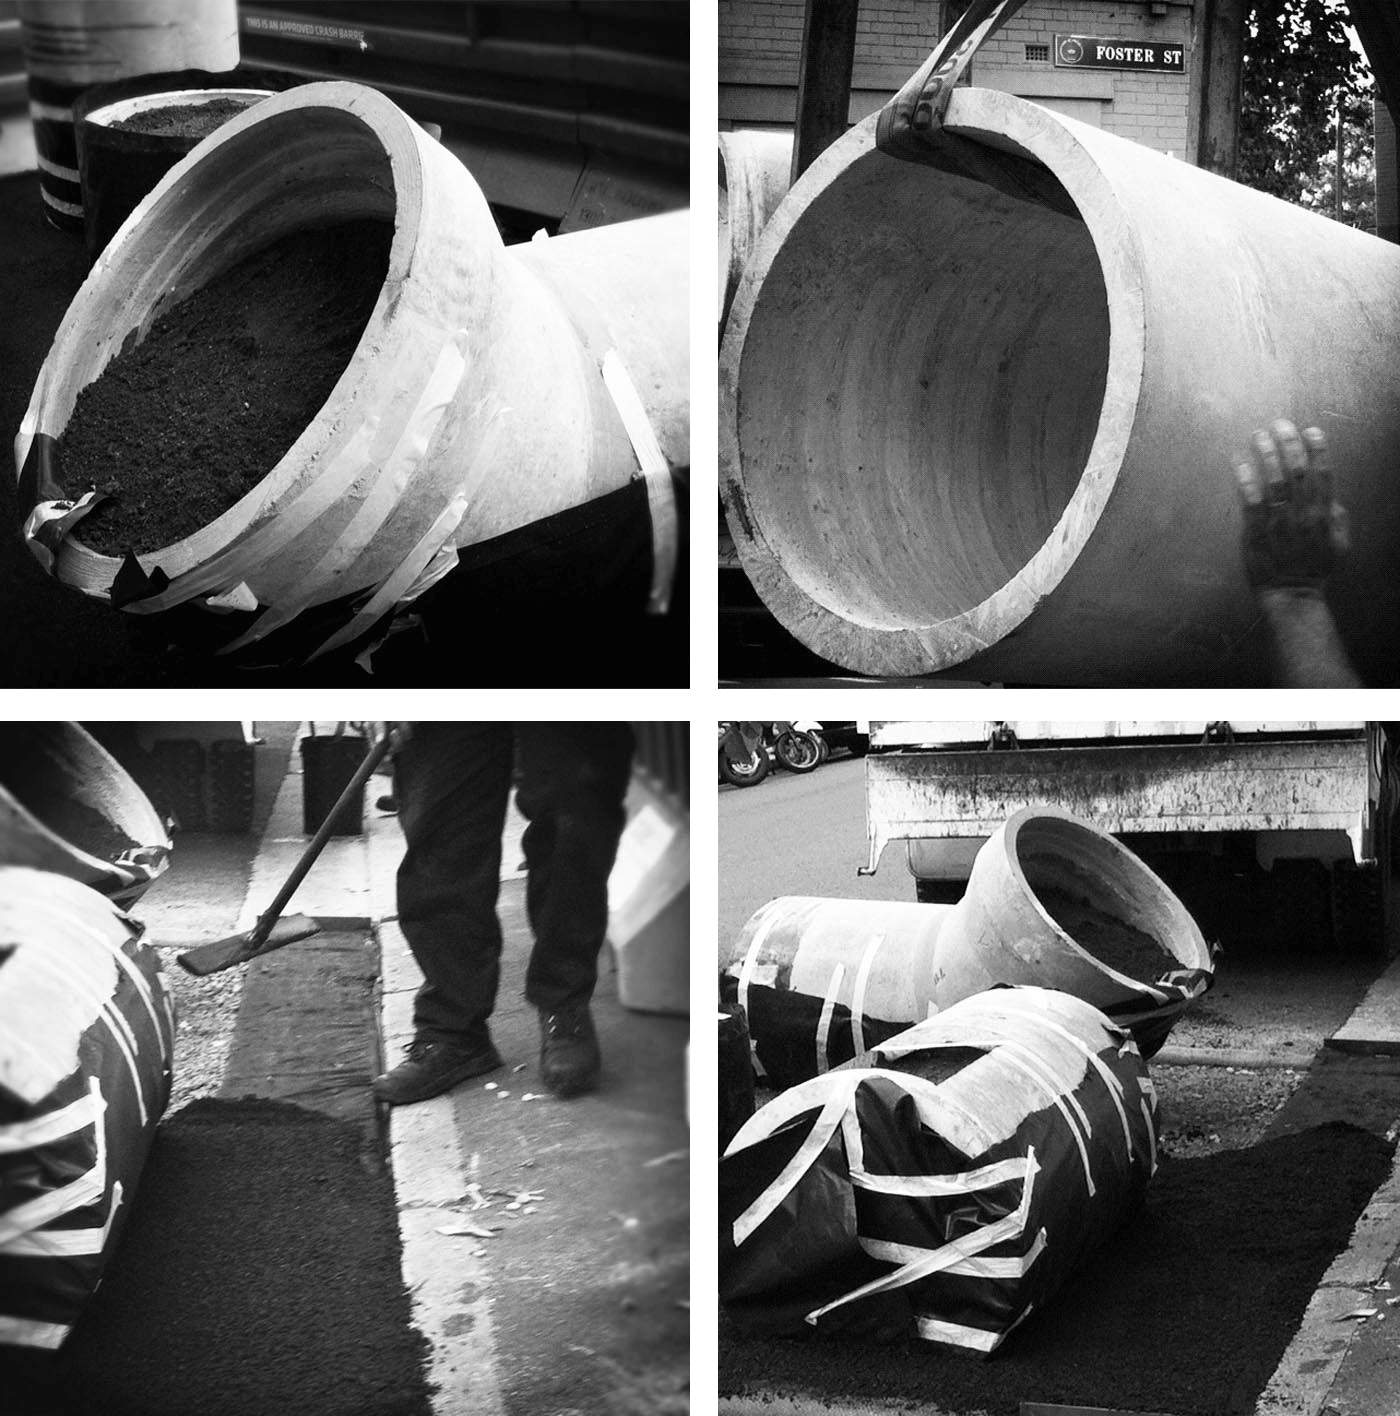 Edible Outdoor Rooms by Sydney award winning architecture office Sam Crawford Architects. Fabrication and transportation of concrete pipes